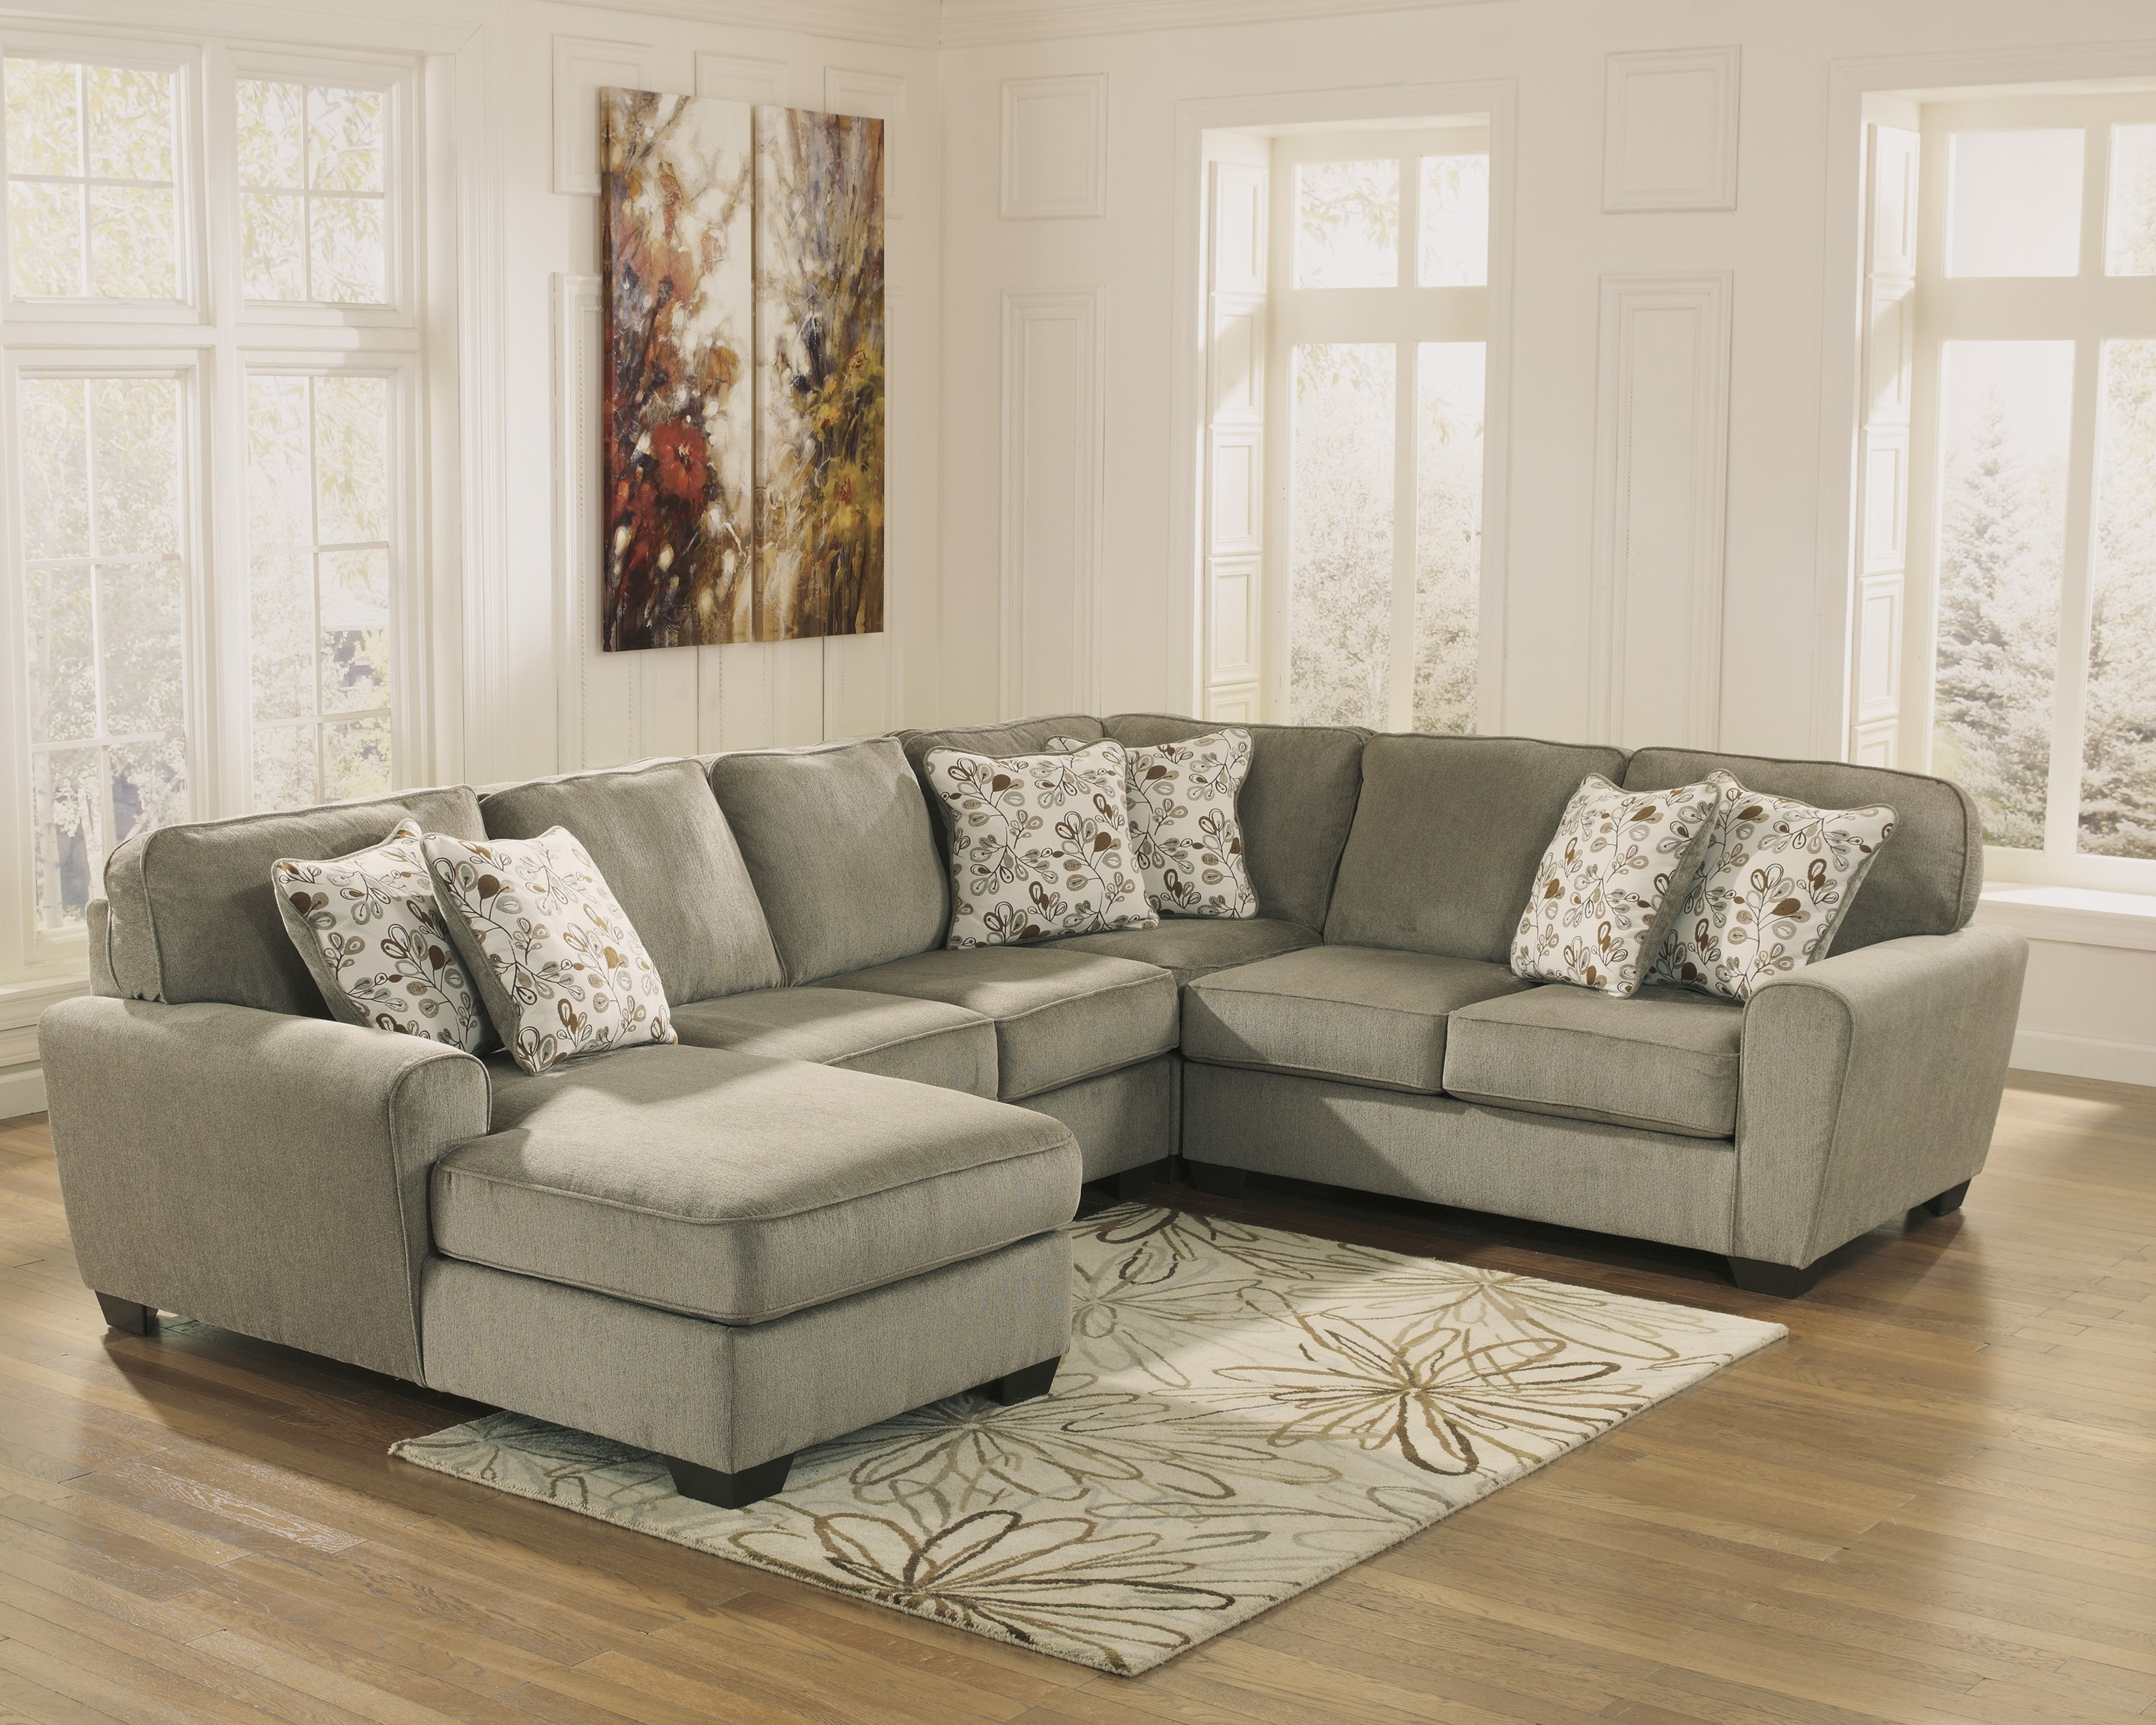 Patola Park Patina 4 Piece Sectional Set With Left Arm Facing Chaise For Elk Grove Ca Sectional Sofas (View 9 of 10)